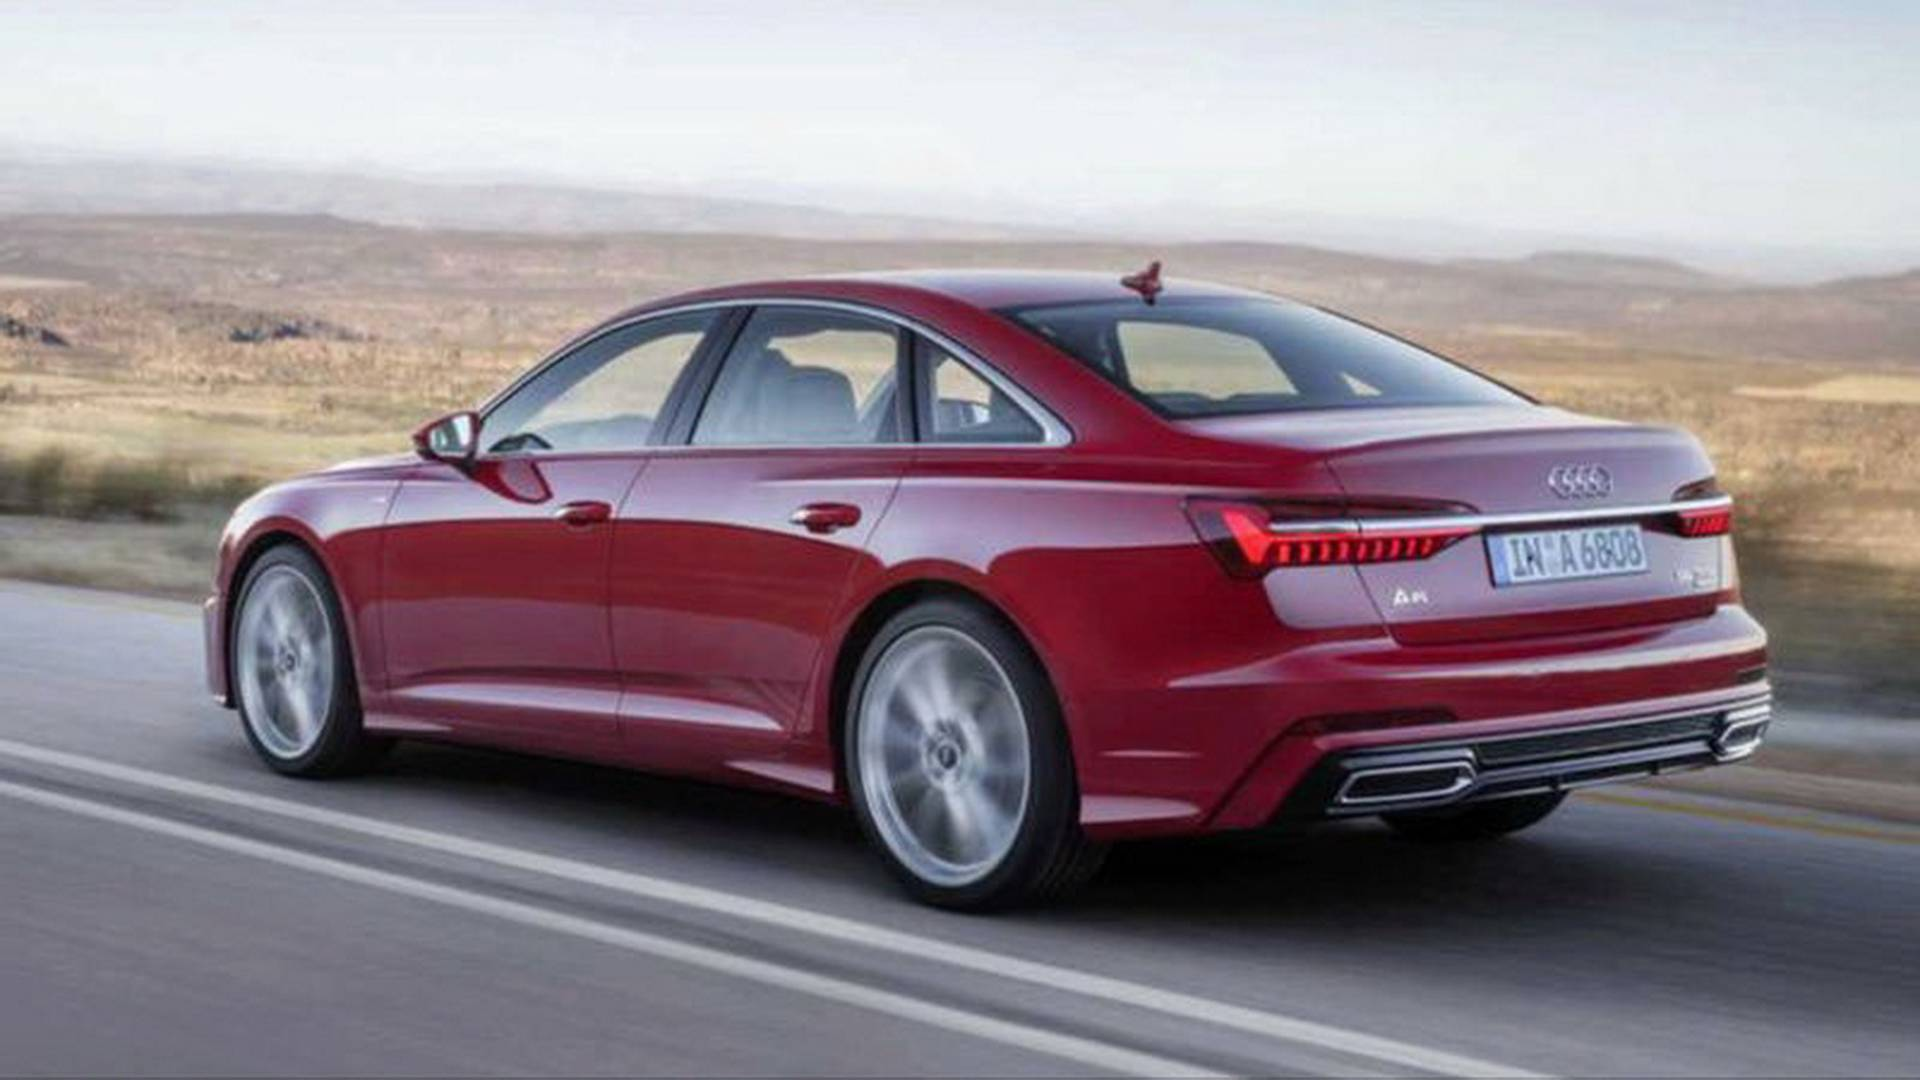 2019 Audi A6 Leaks Out In Alleged Official Images